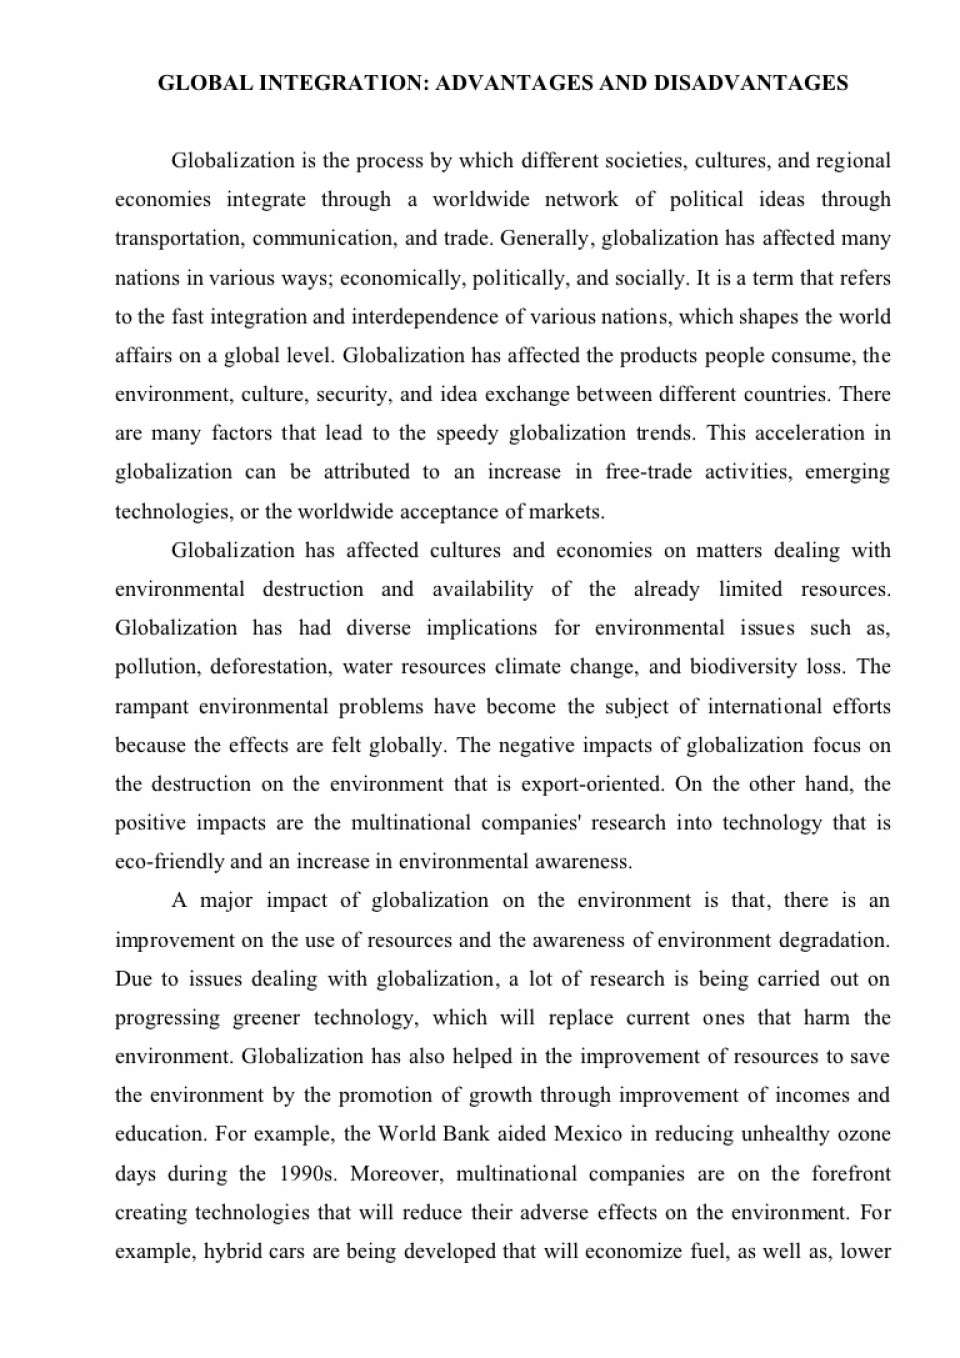 021 Essayglobalization Phpapp02 Thumbnail Essay Example Advantage And Disadvantage Of Shocking Science Advantages Disadvantages In Tamil Pdf Marathi Language English 960